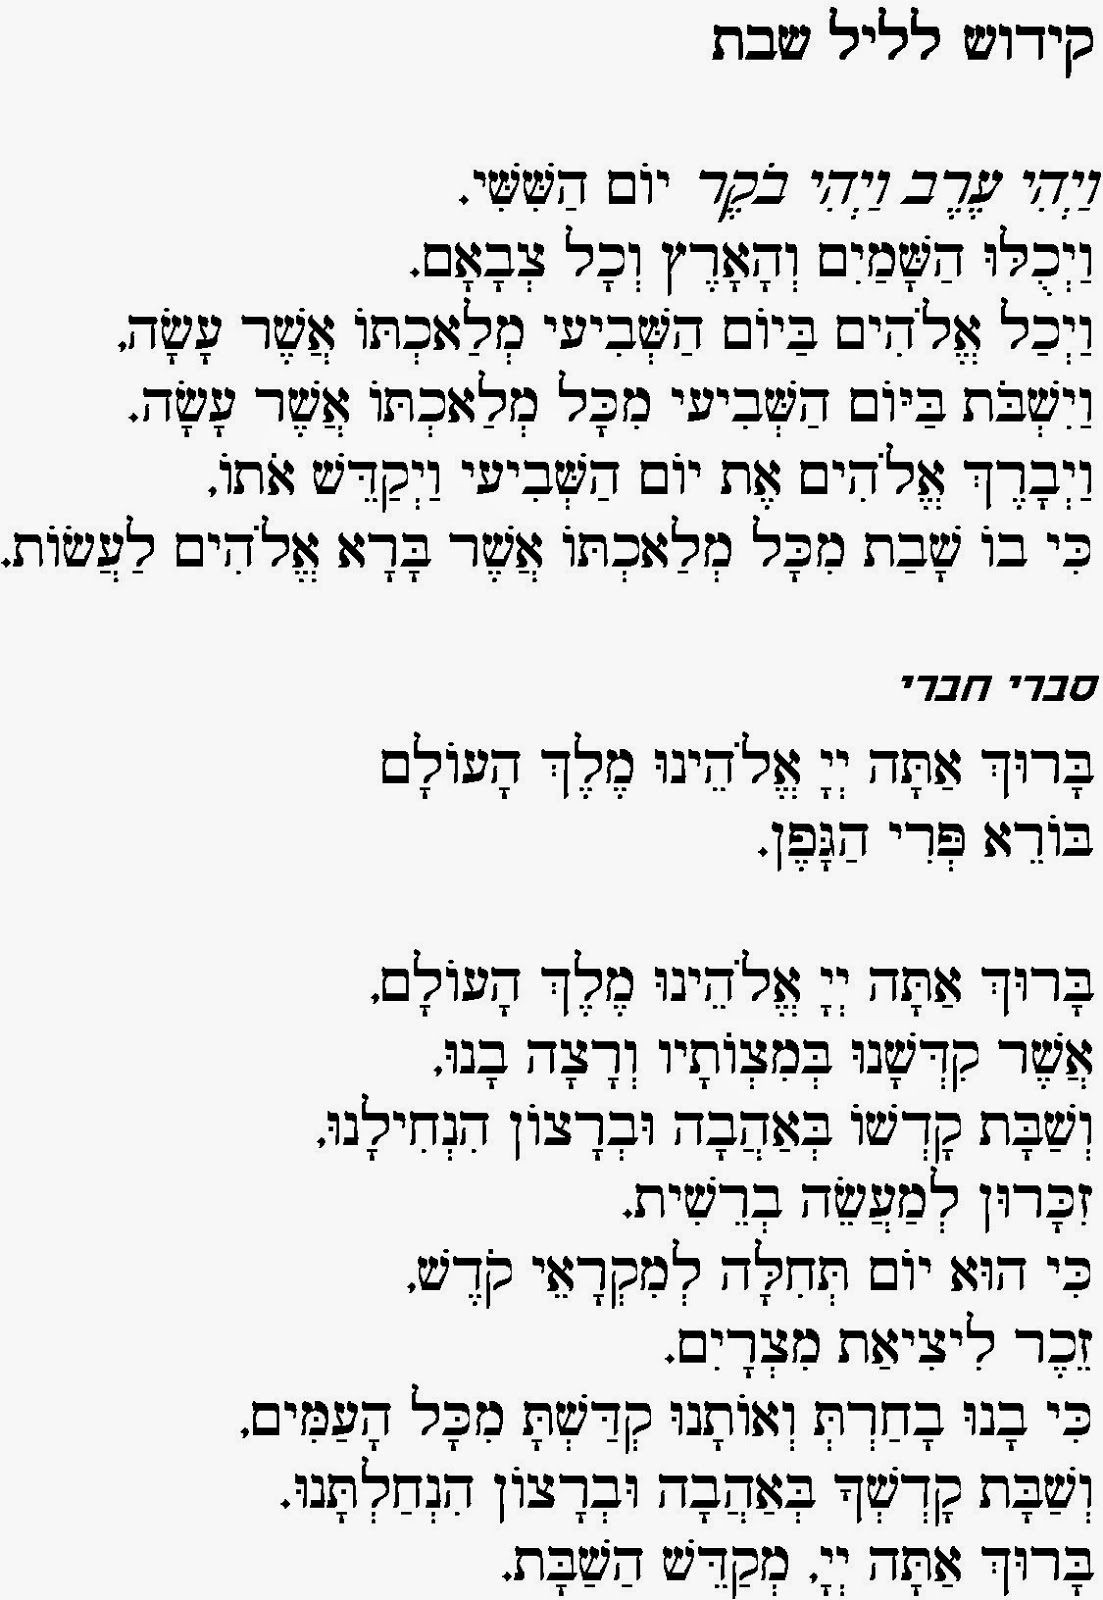 Amateur cantor kabbalat shabbat service kiddish considered a symbol of g ds creation and a prologue to the holy convocations as leviticus 23 in the listing of festivals first mentions the sabbath biocorpaavc Choice Image